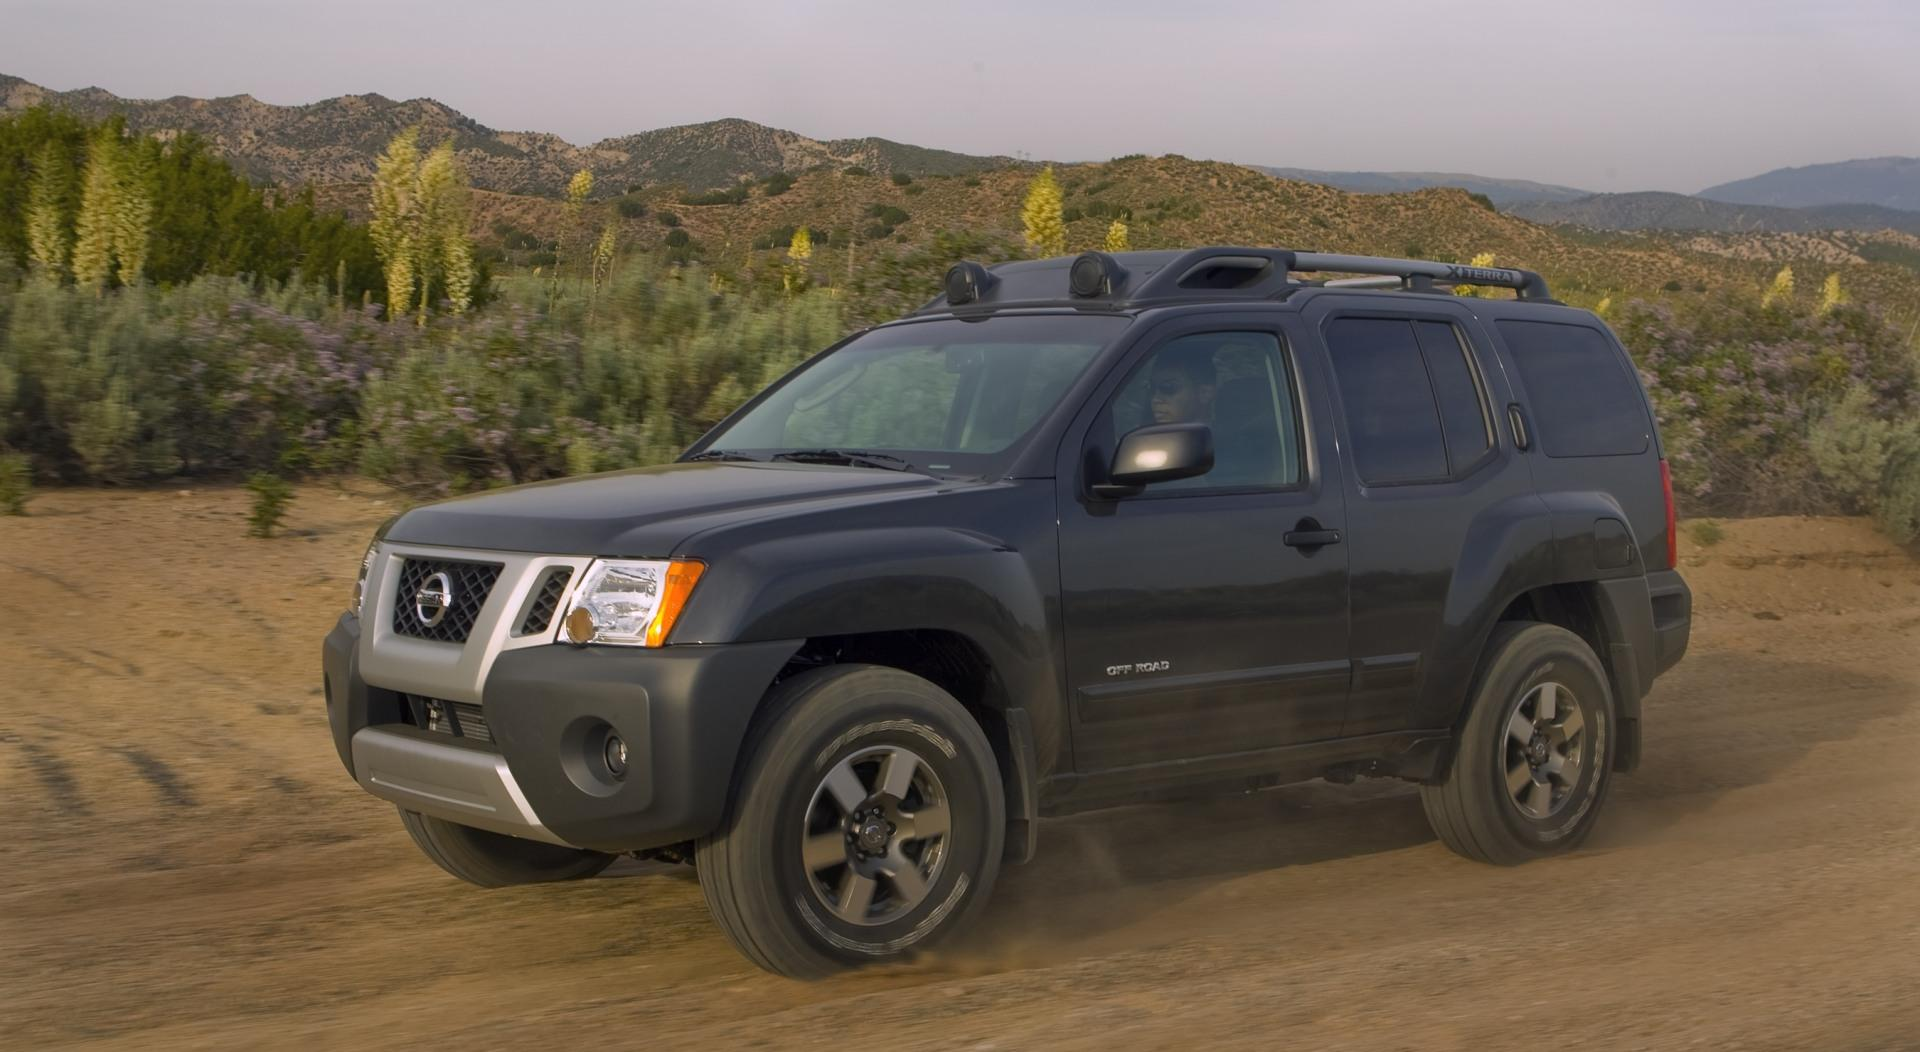 2010 Nissan Xterra News and Information